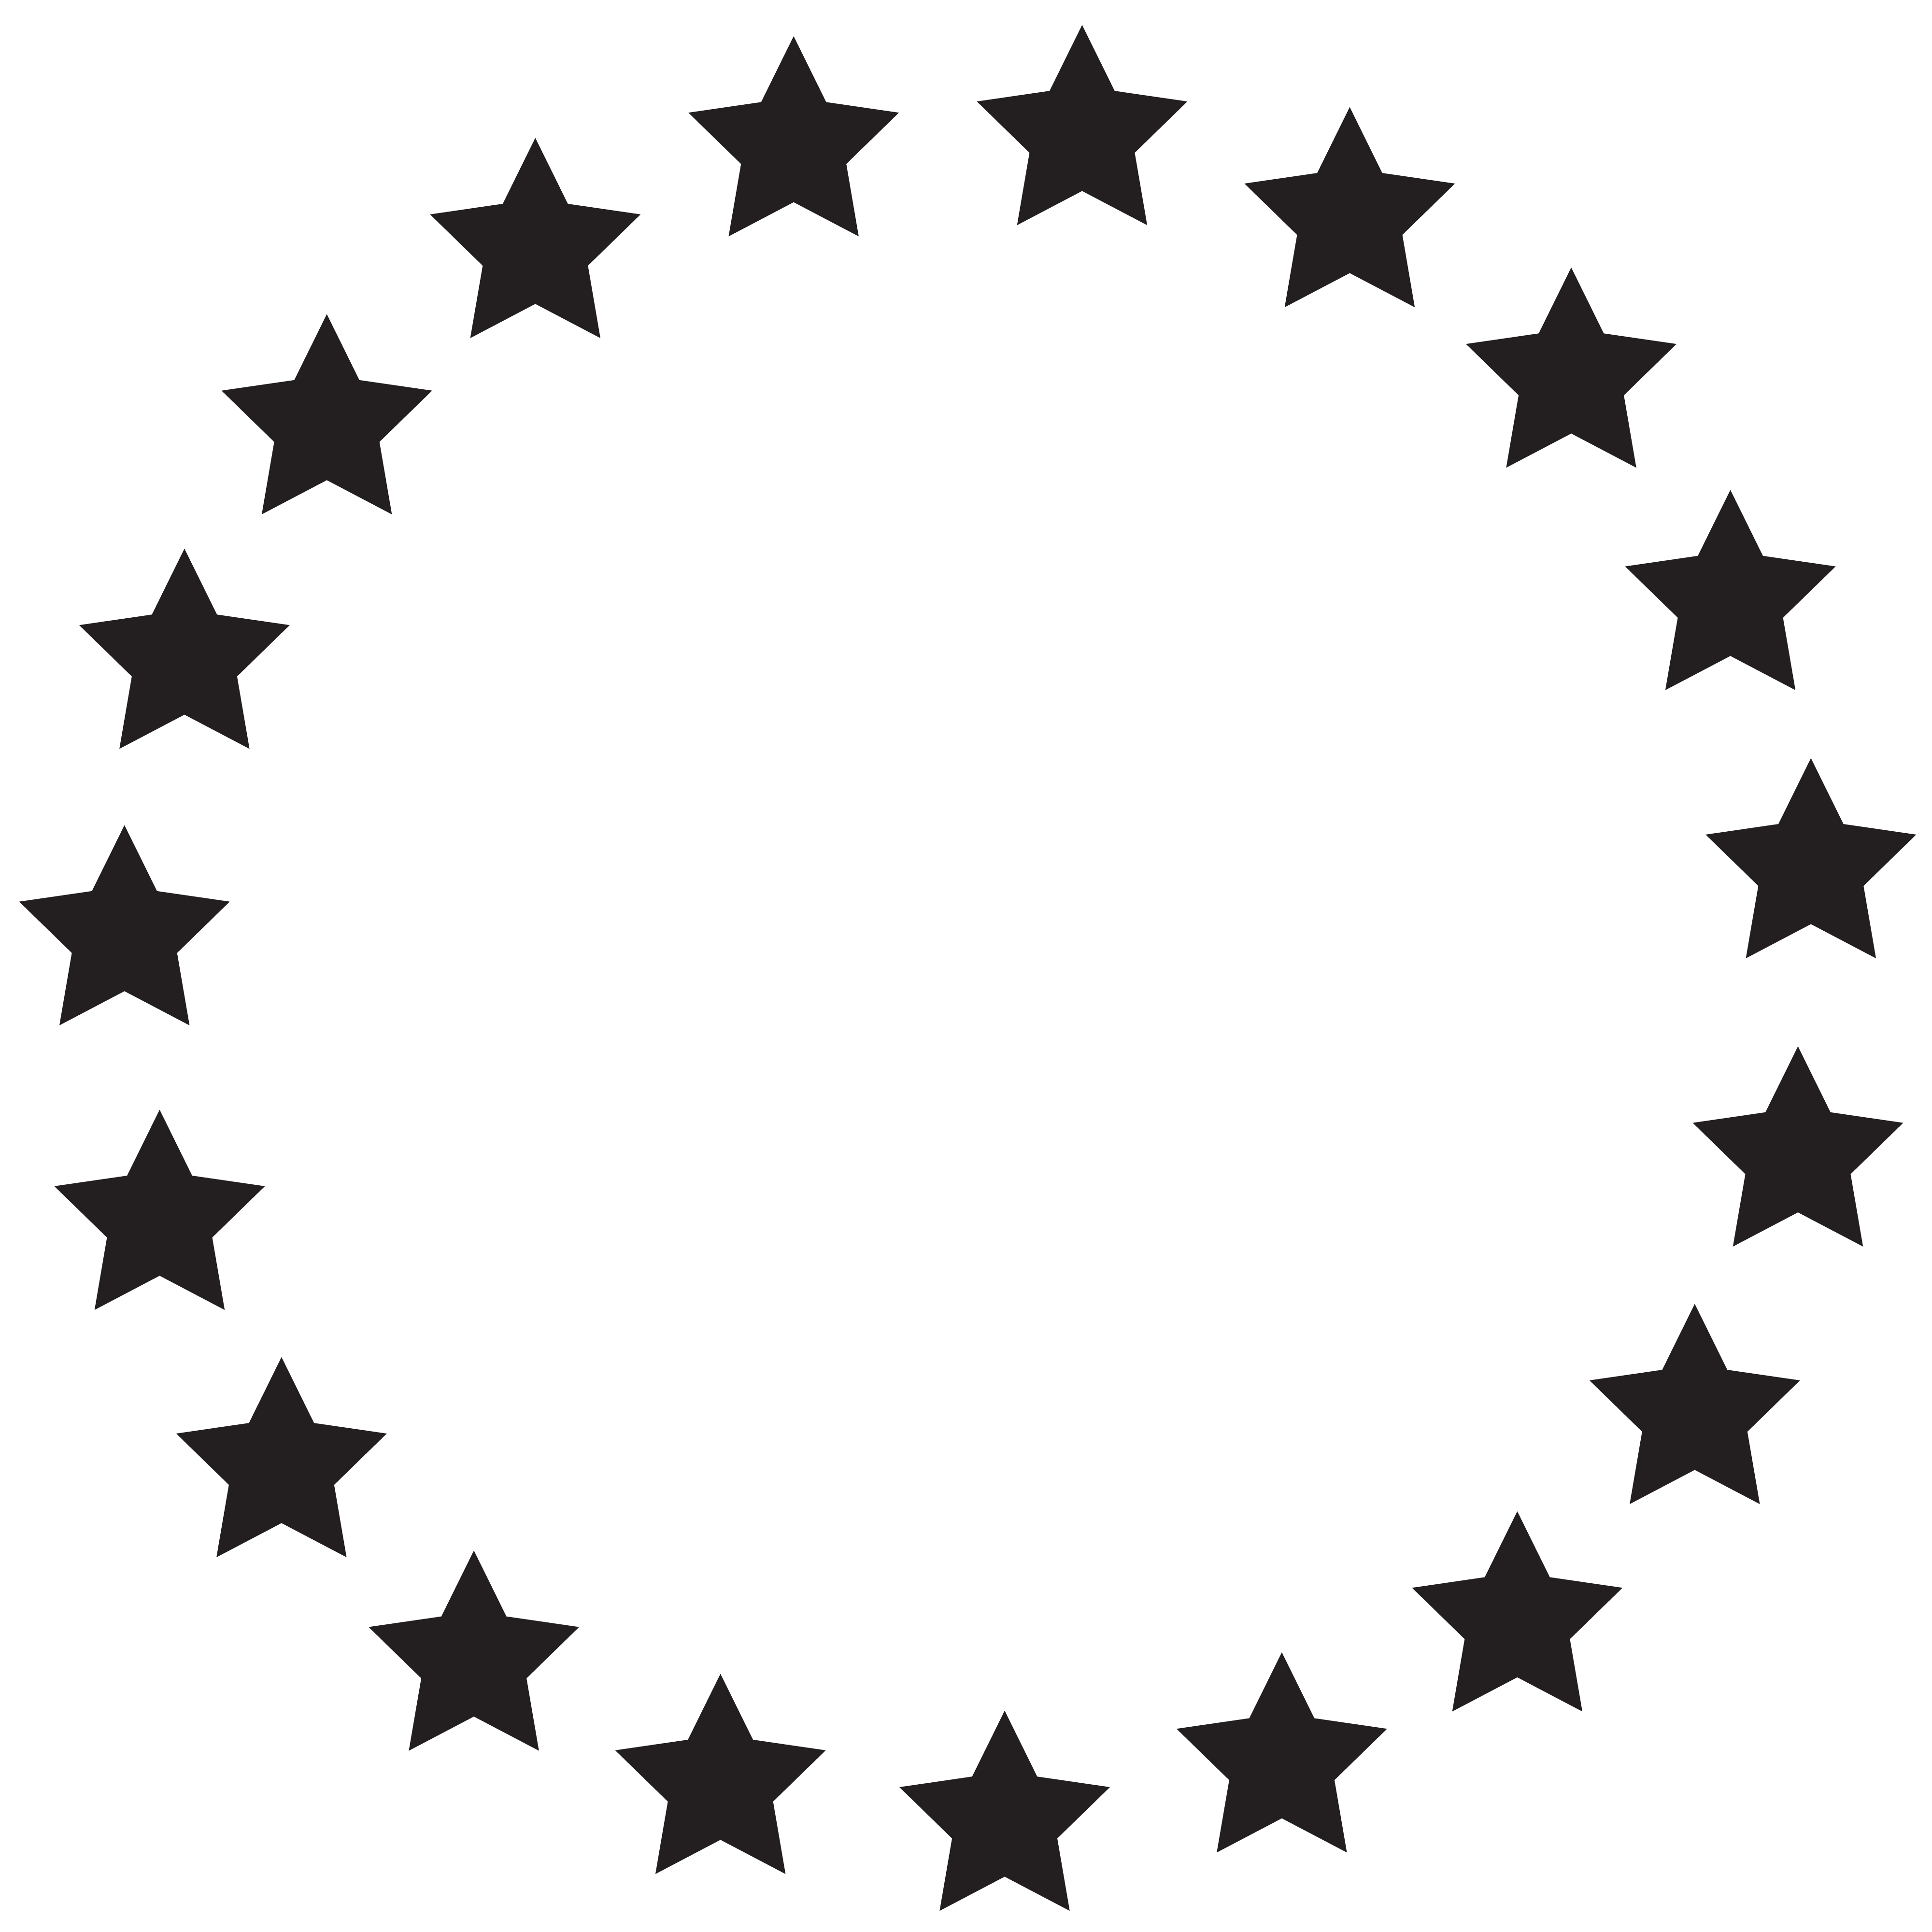 Picture clipart circle. Of stars